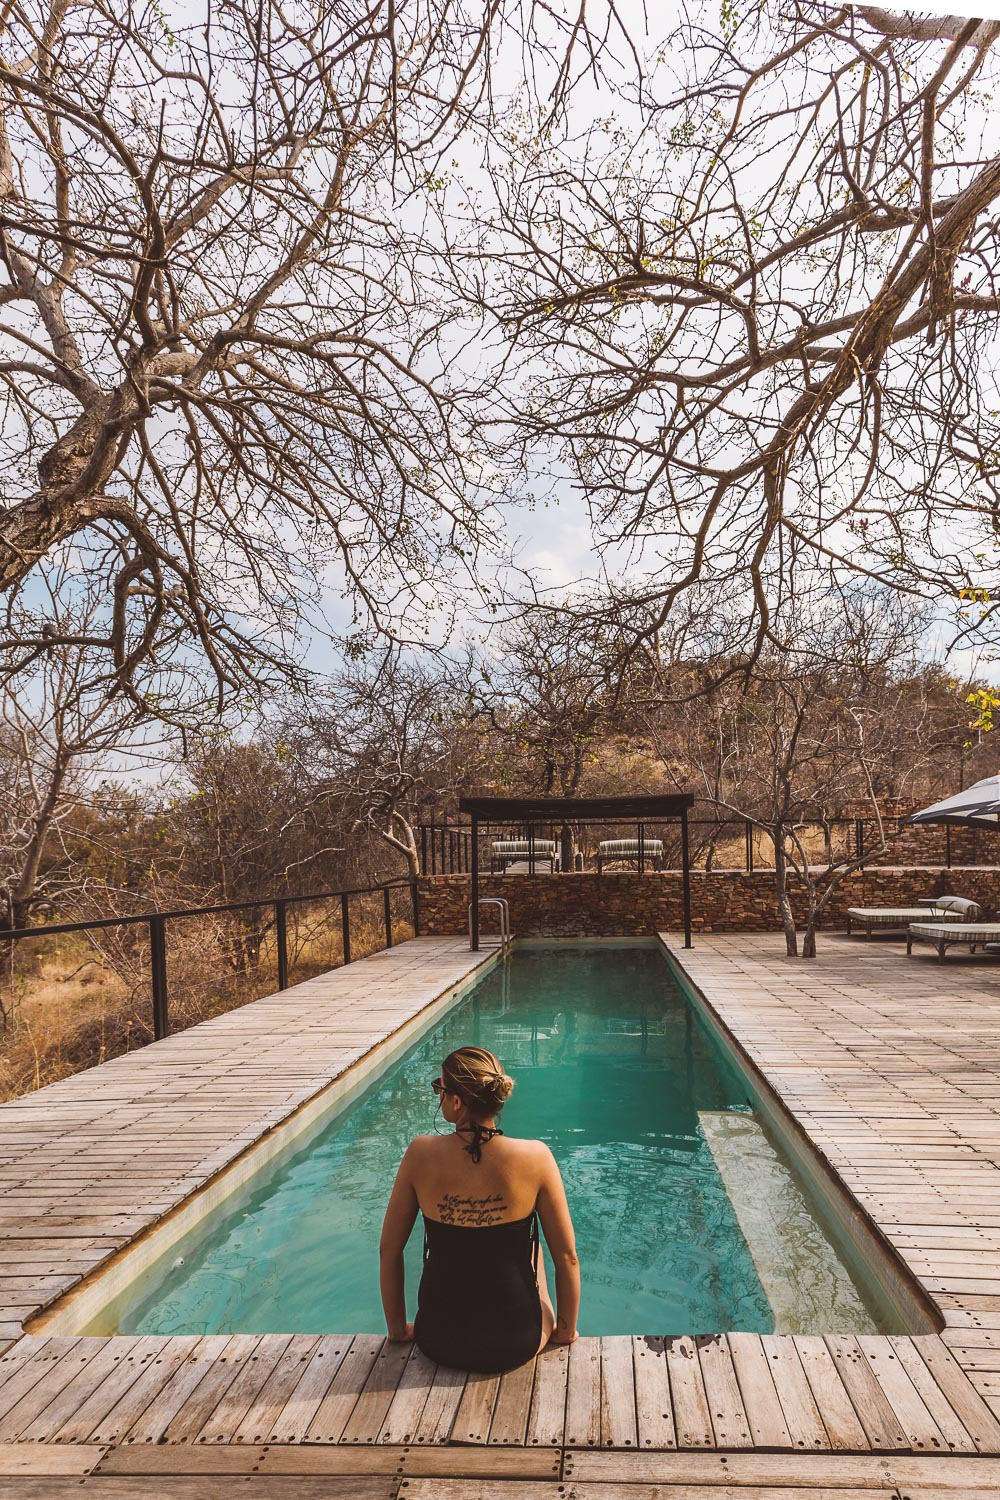 Staying at The Outpost, Kruger National Park